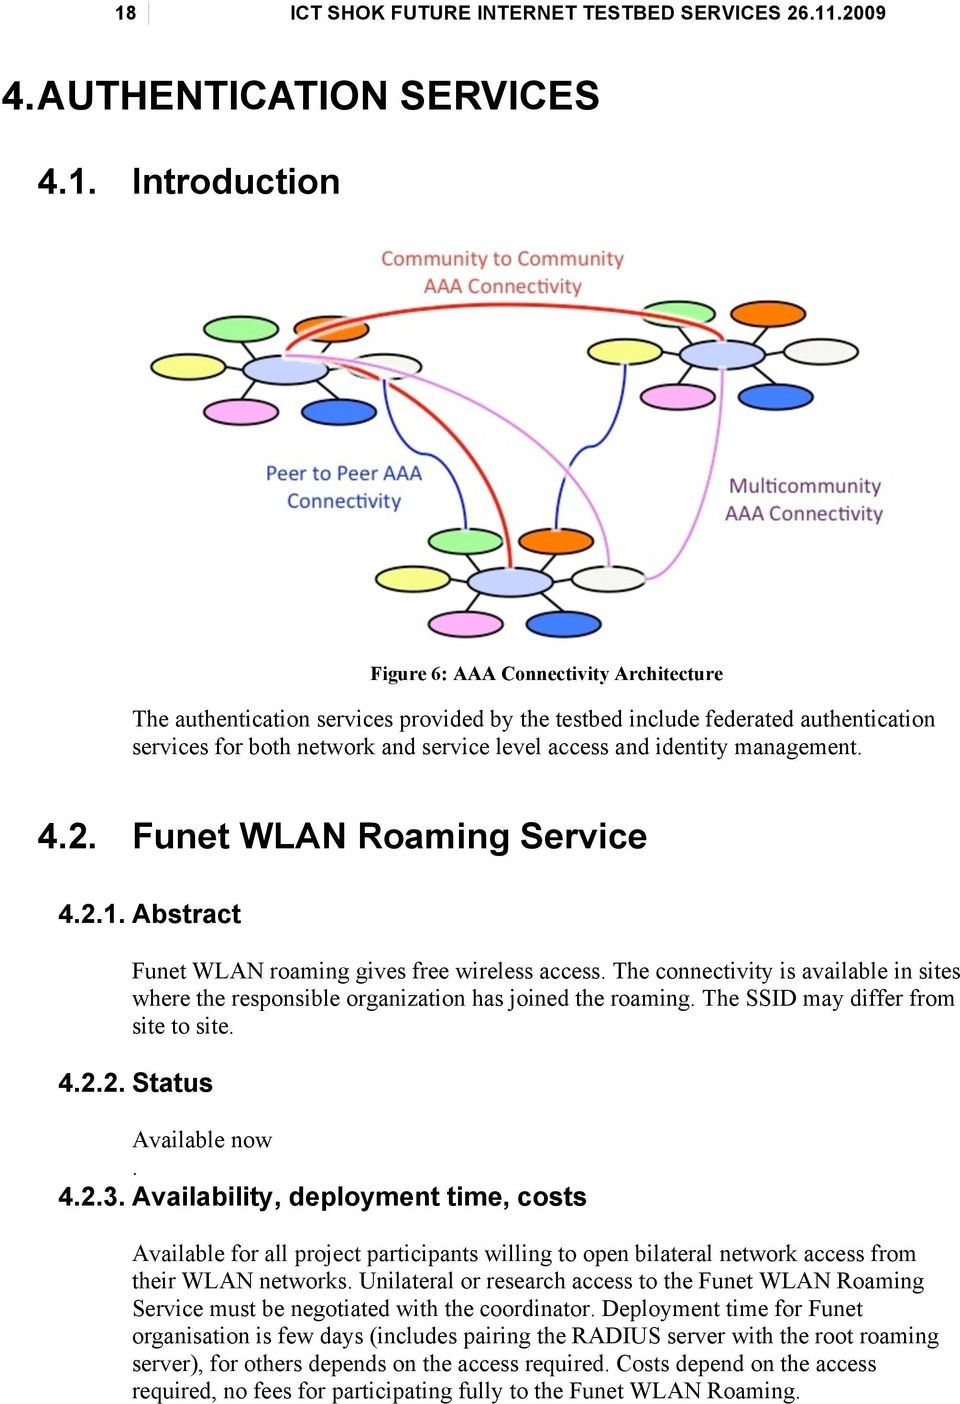 Abstract Funet WLAN roaming gives free wireless access. The connectivity is available in sites where the responsible organization has joined the roaming. The SSID may differ from site to site. 4.2.